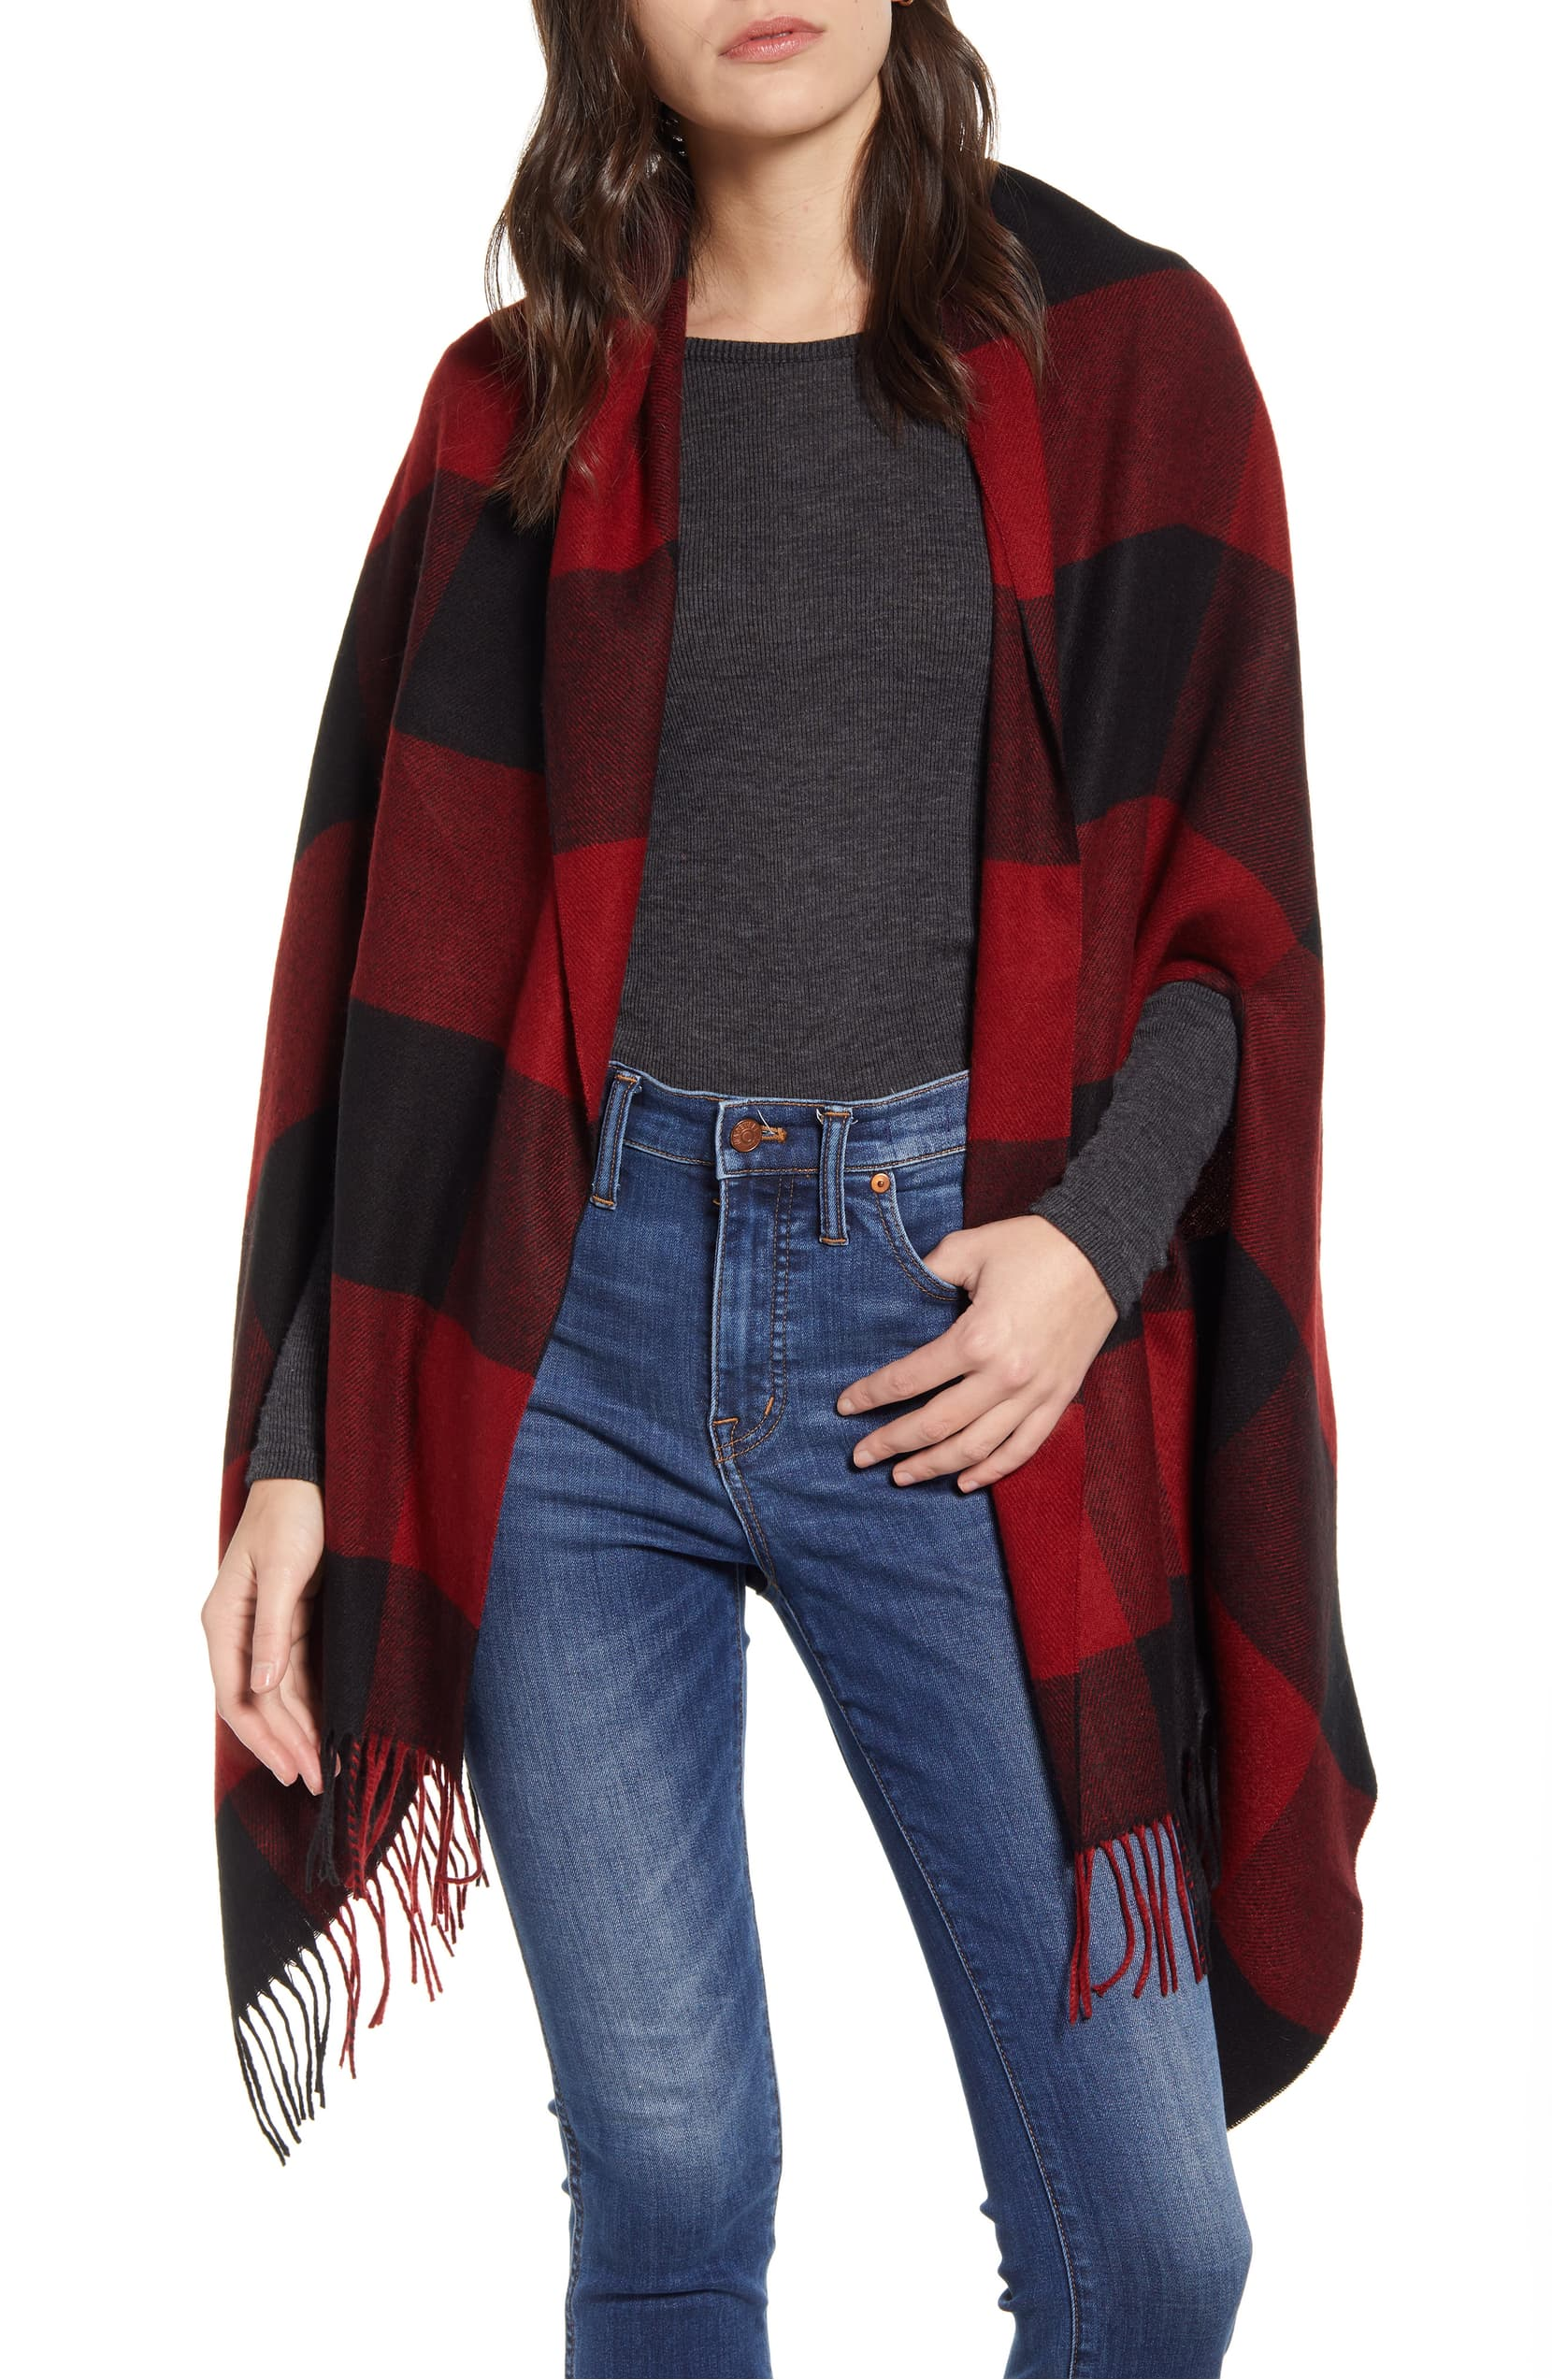 Simply genius—Madewell's designers added convenient armholes to a supersoft scarf so it can be worn around the neck or as a cape. Shop it{ }- $55. (Image: Nordstrom){ }